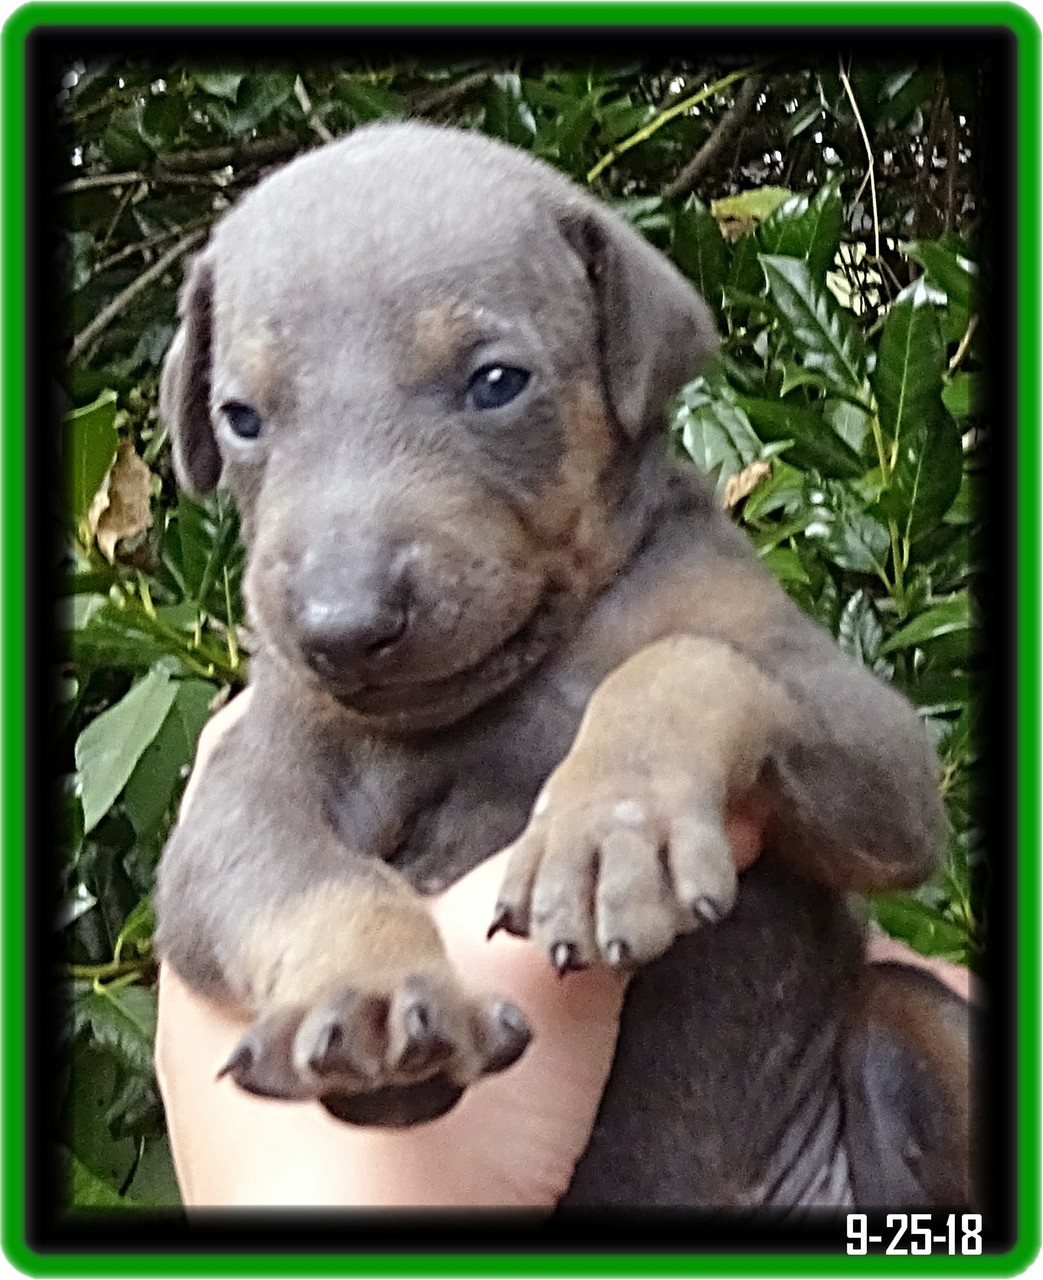 Indy Zoey pup...  Laguna Niguel CA - will finished his SP2 program.